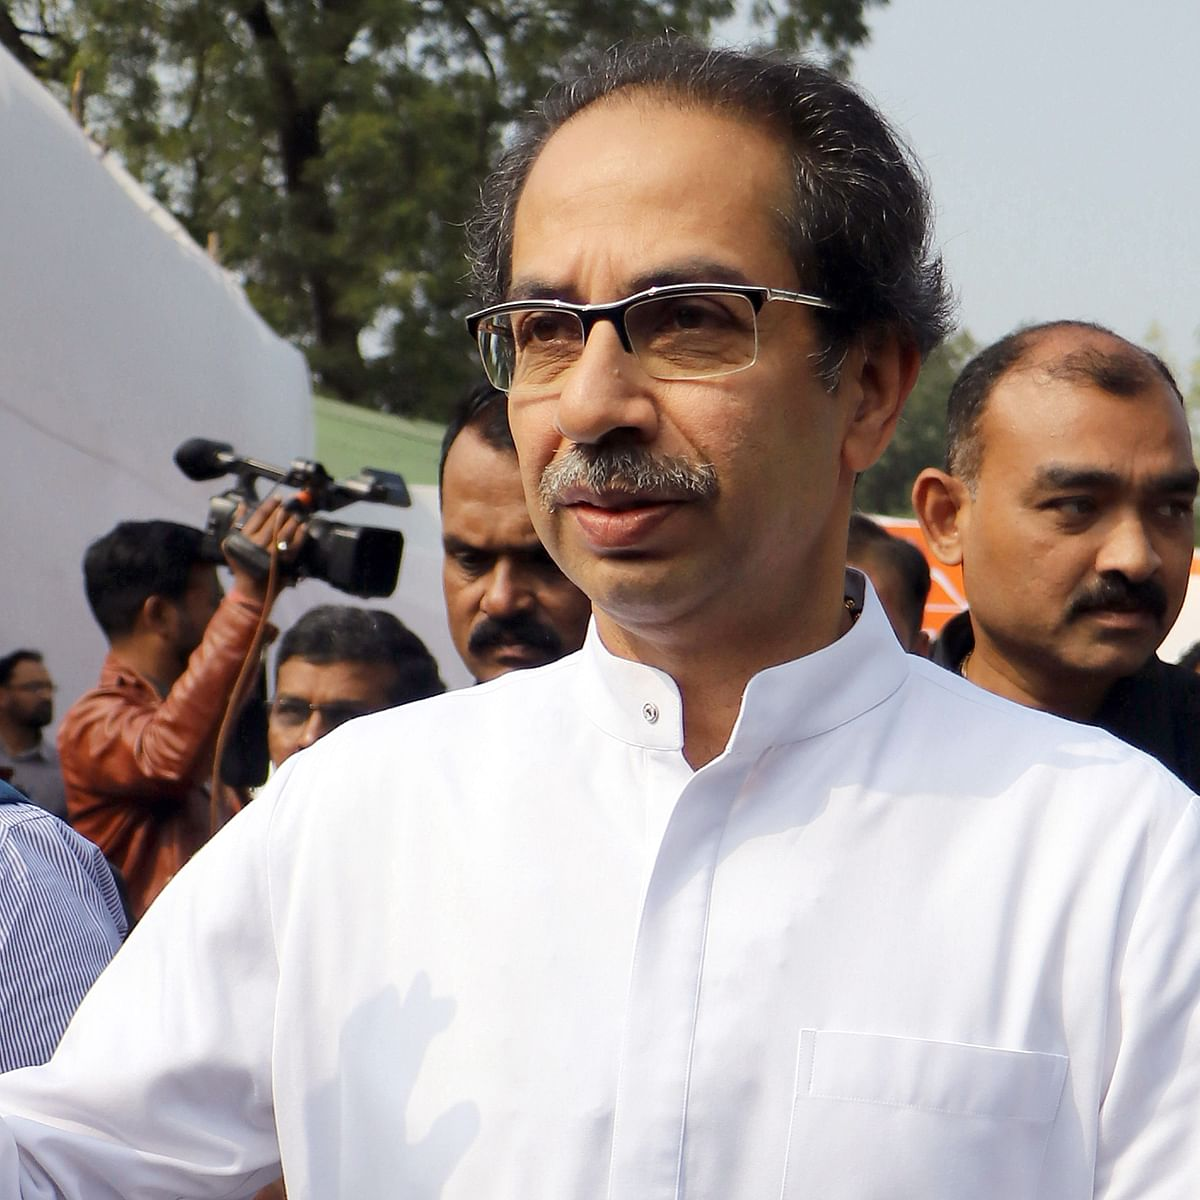 Never dreamt of becoming chief minister, says Uddhav Thackeray